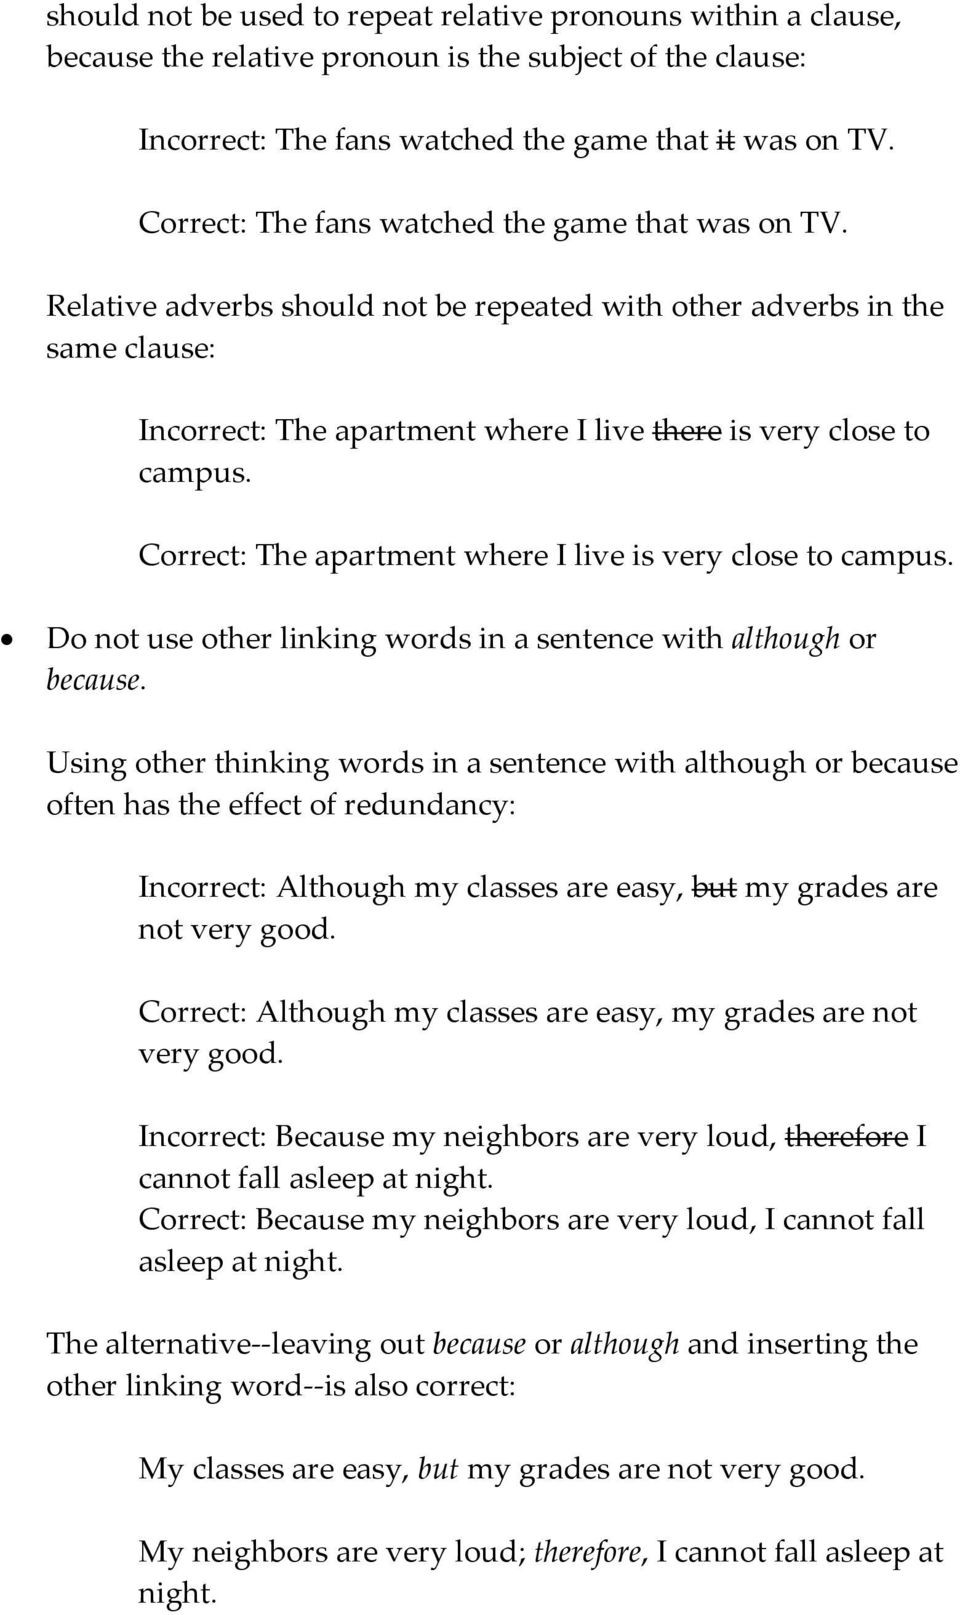 Correct: The apartment where I live is very close to campus. Do not use other linking words in a sentence with although or because.